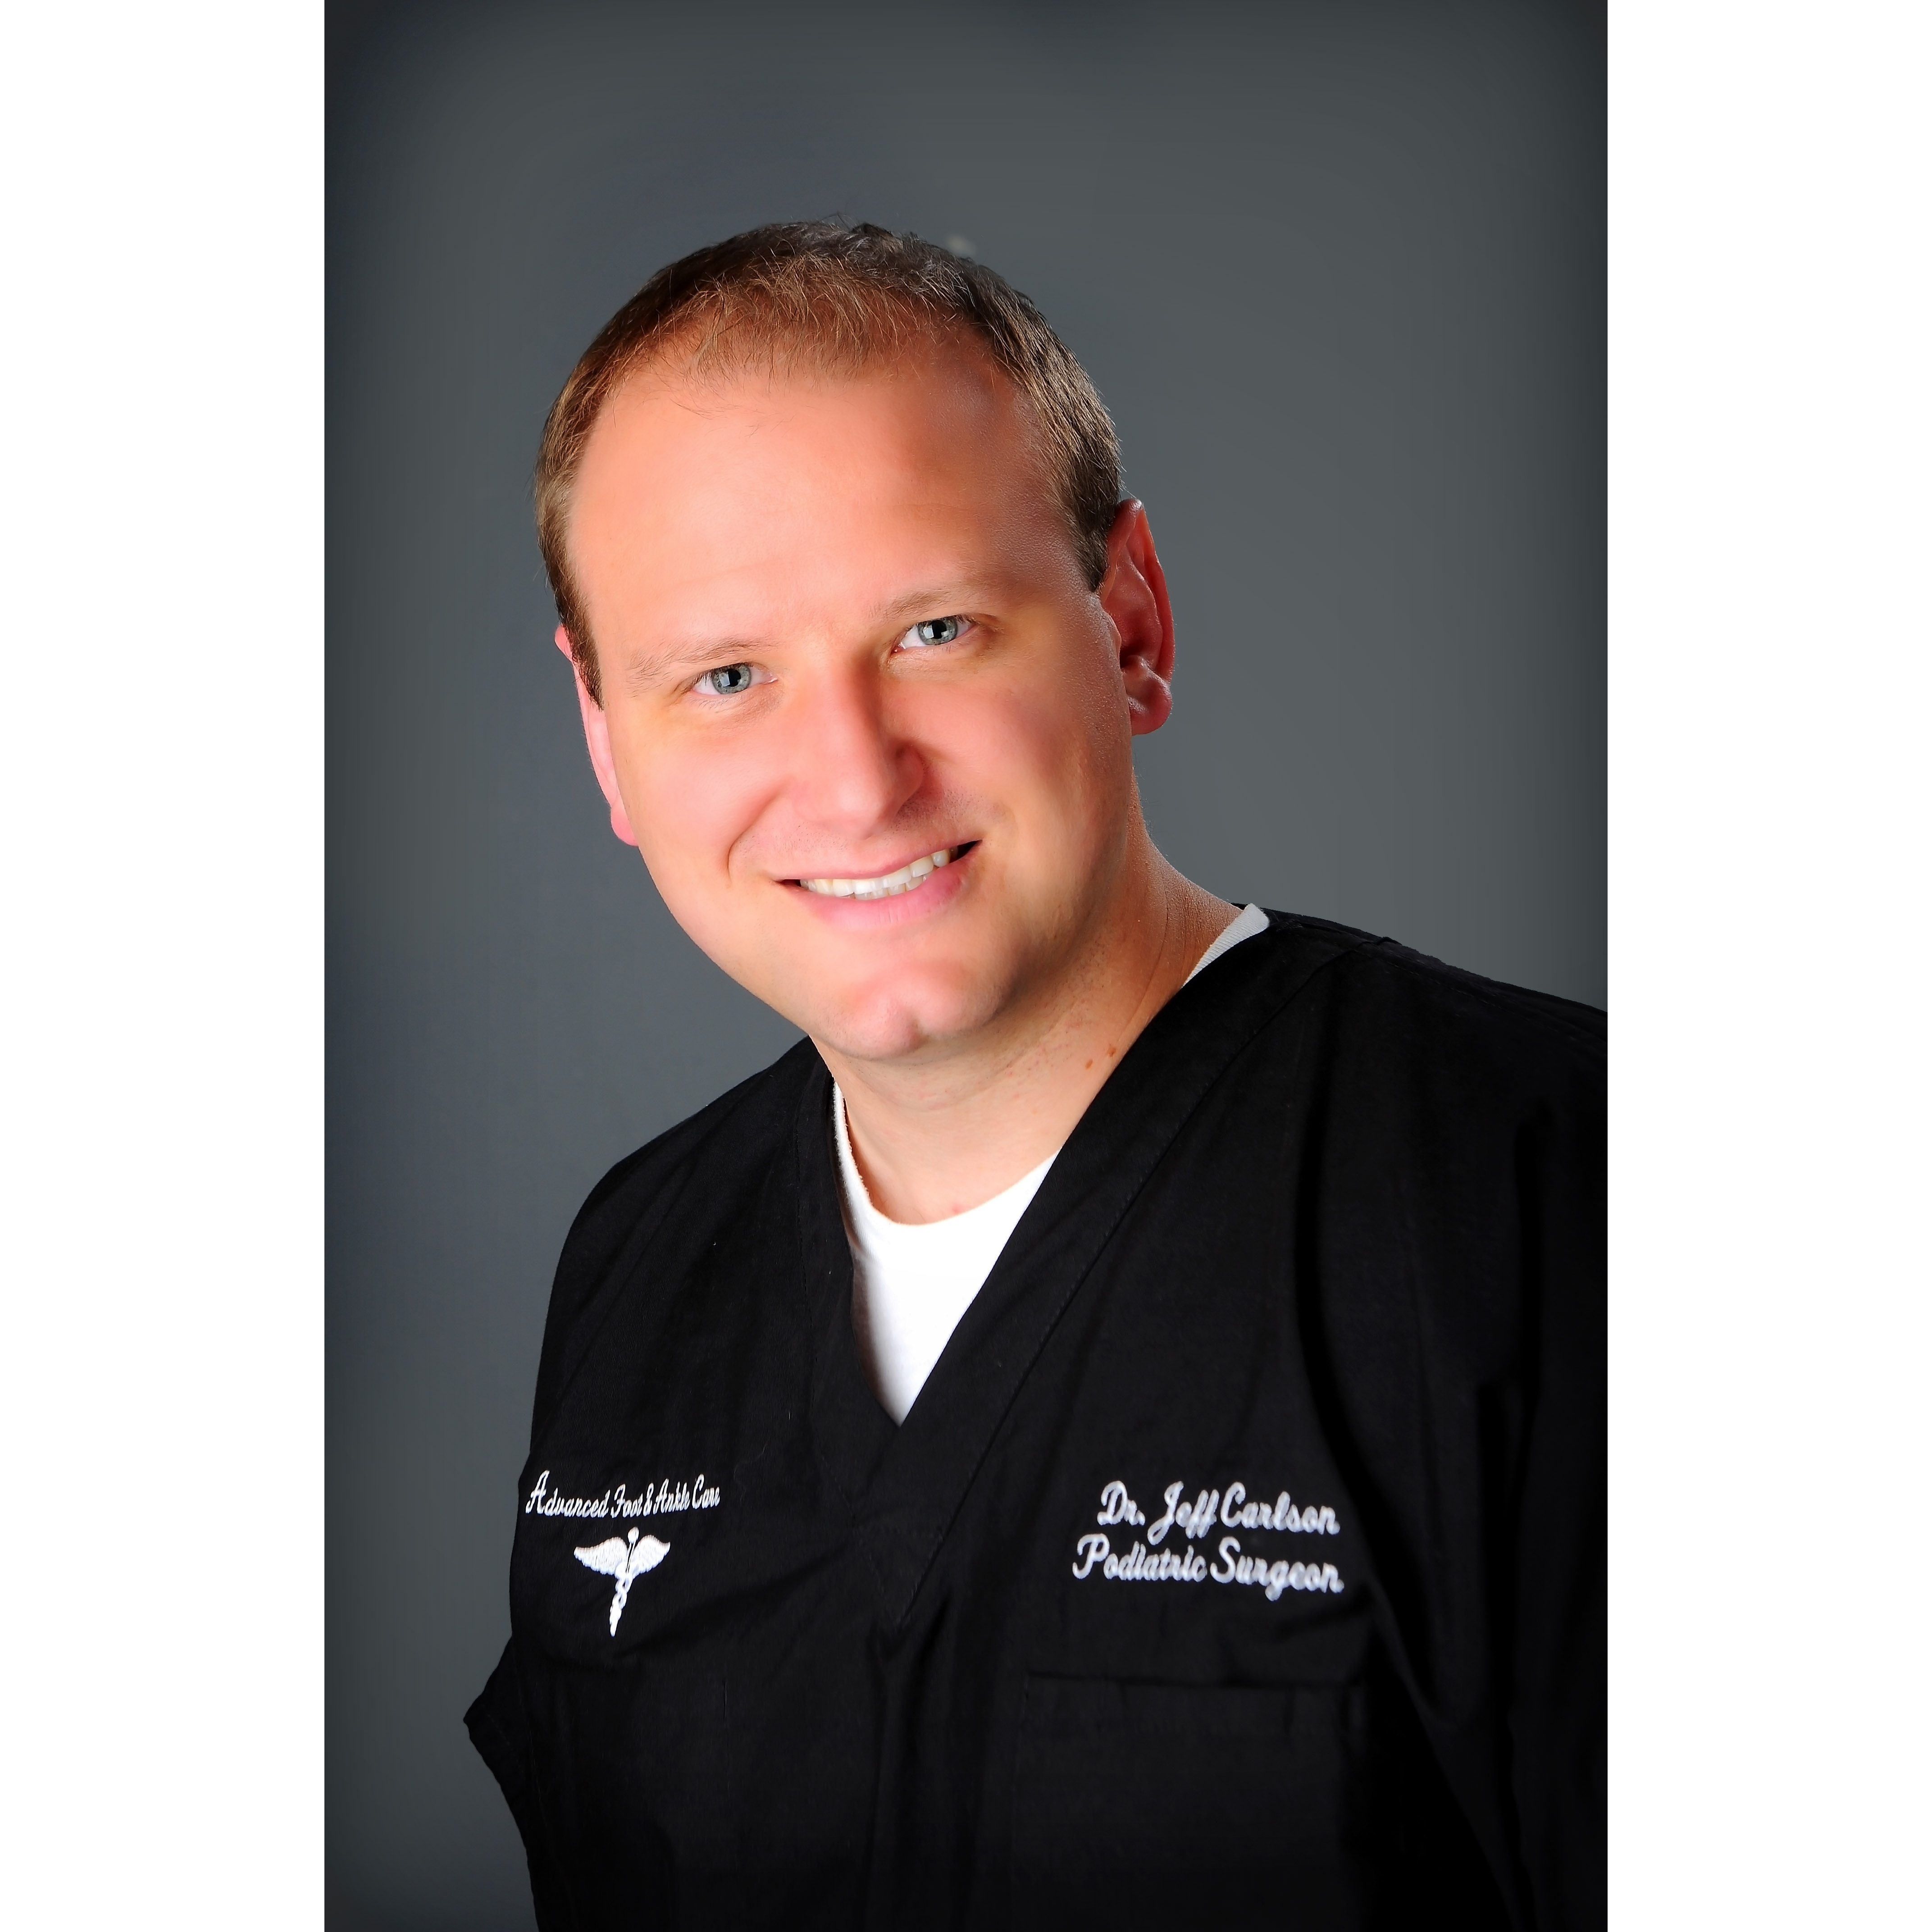 Jeffrey Carlson, DPM - Tooele, UT - General or Family Practice Physicians